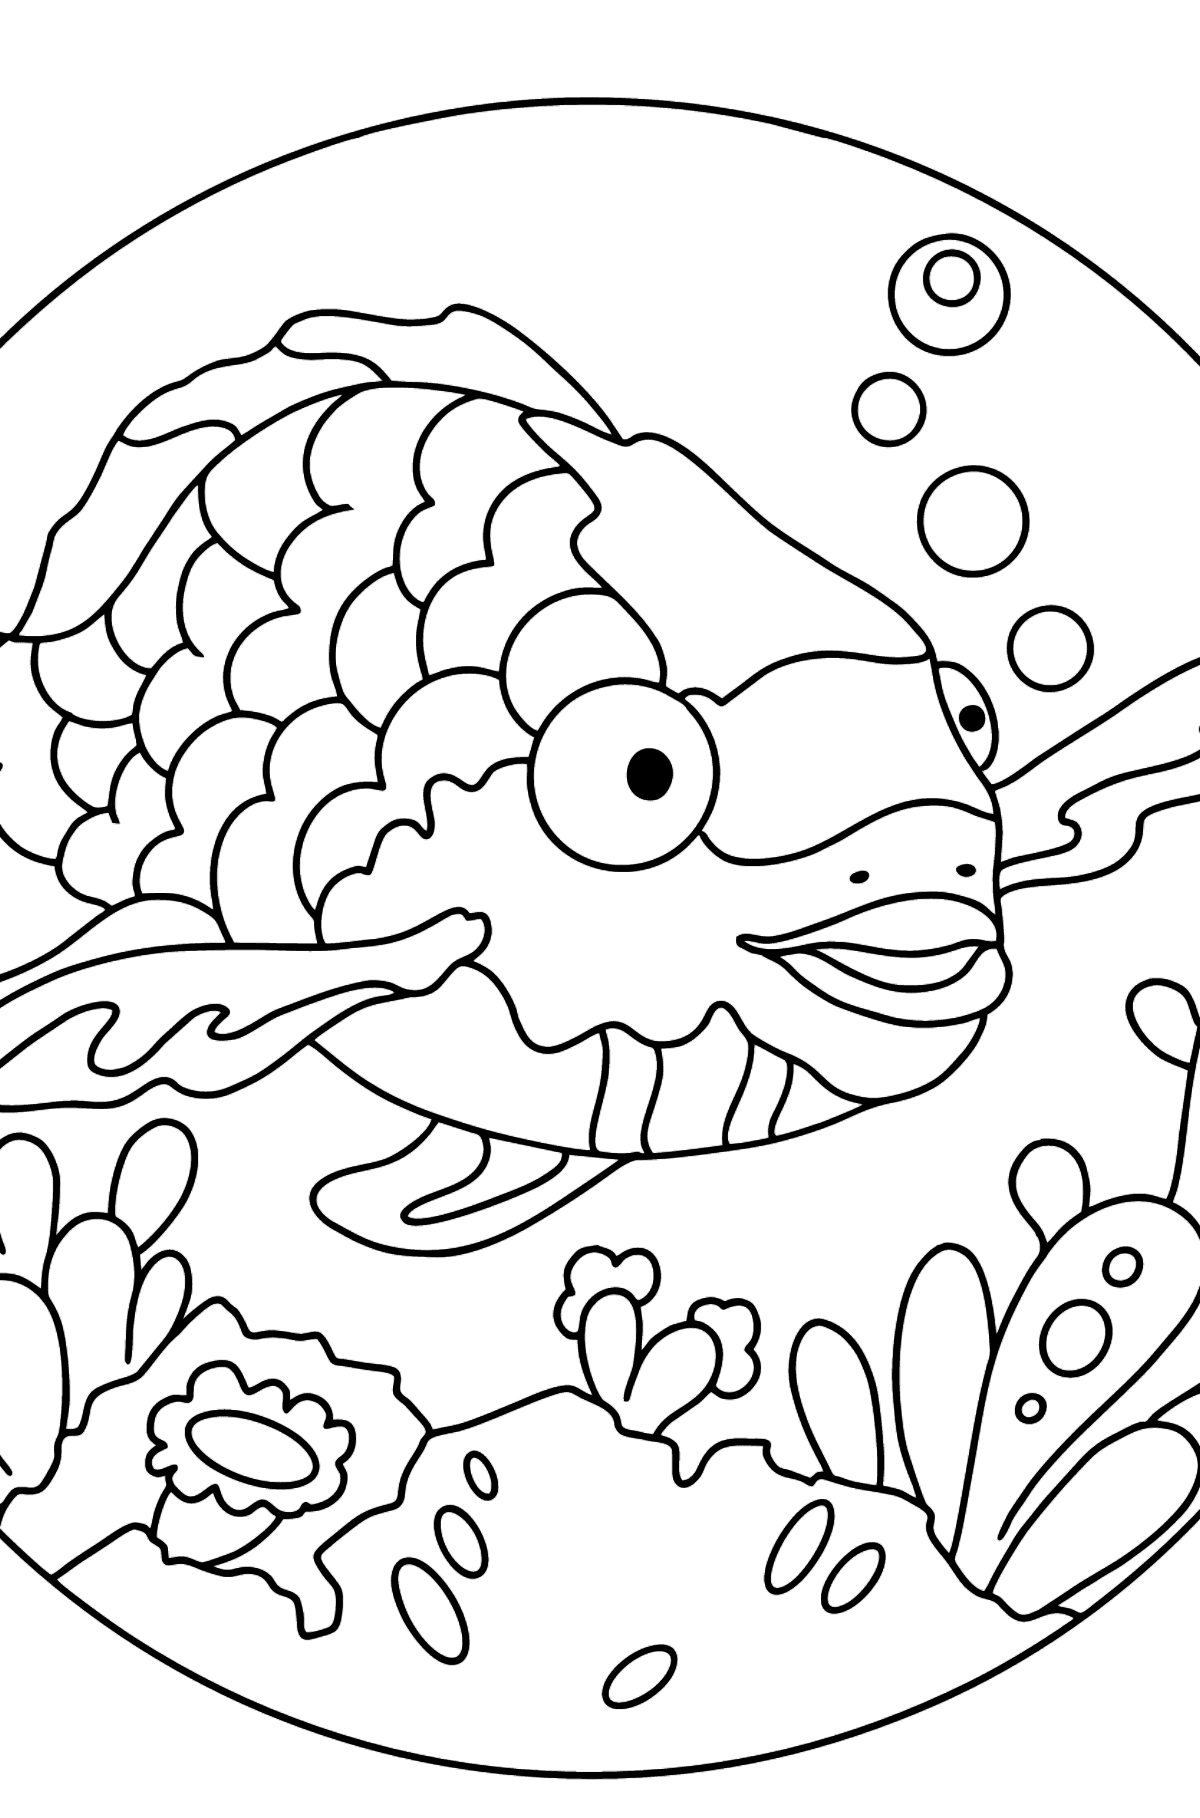 Coloring Page - An Exotic or Rainbow fish - Coloring Pages for Kids